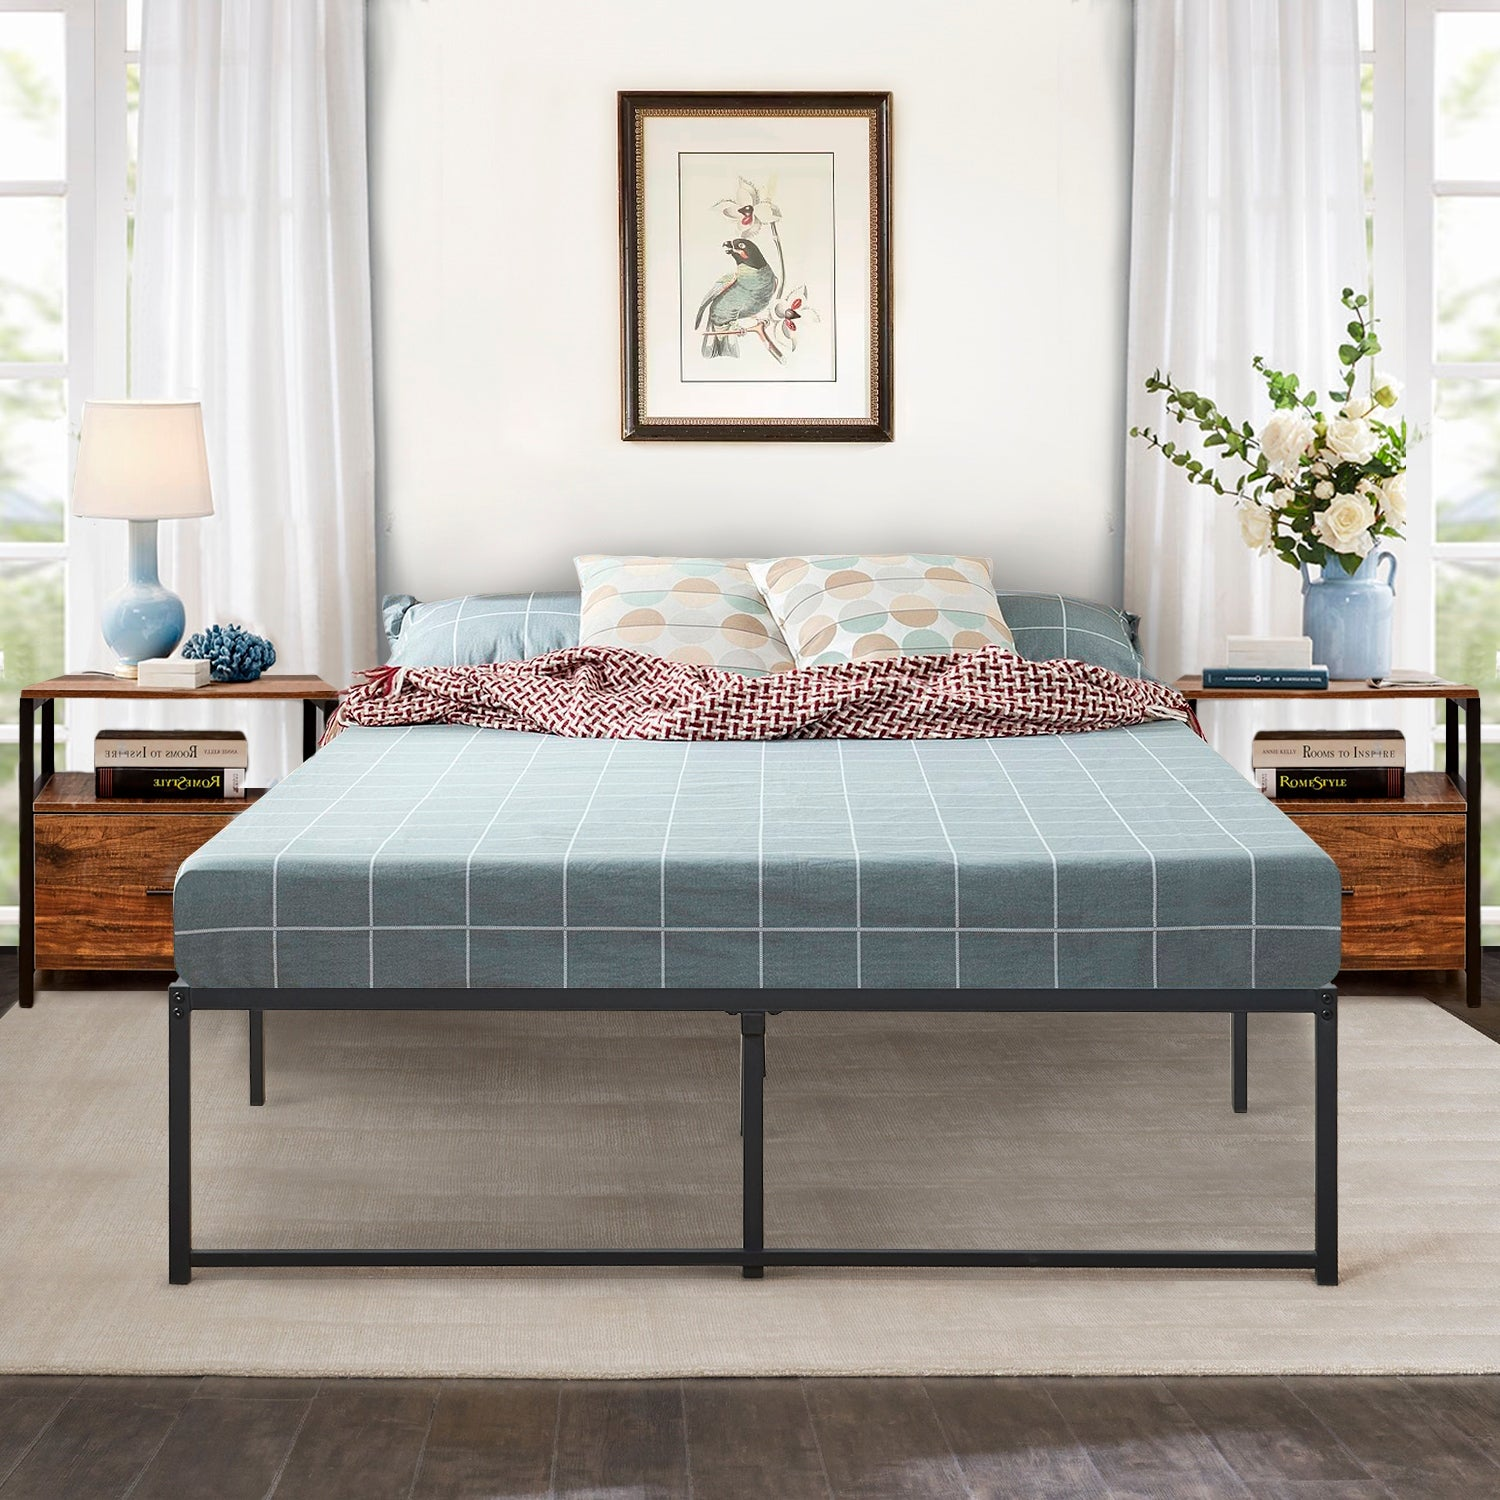 Vecelo 14 Inch Storage Deluxe Metal Twin Full Queen Size Platform Bed Twin Full Queen Size On Sale Overstock 28596743